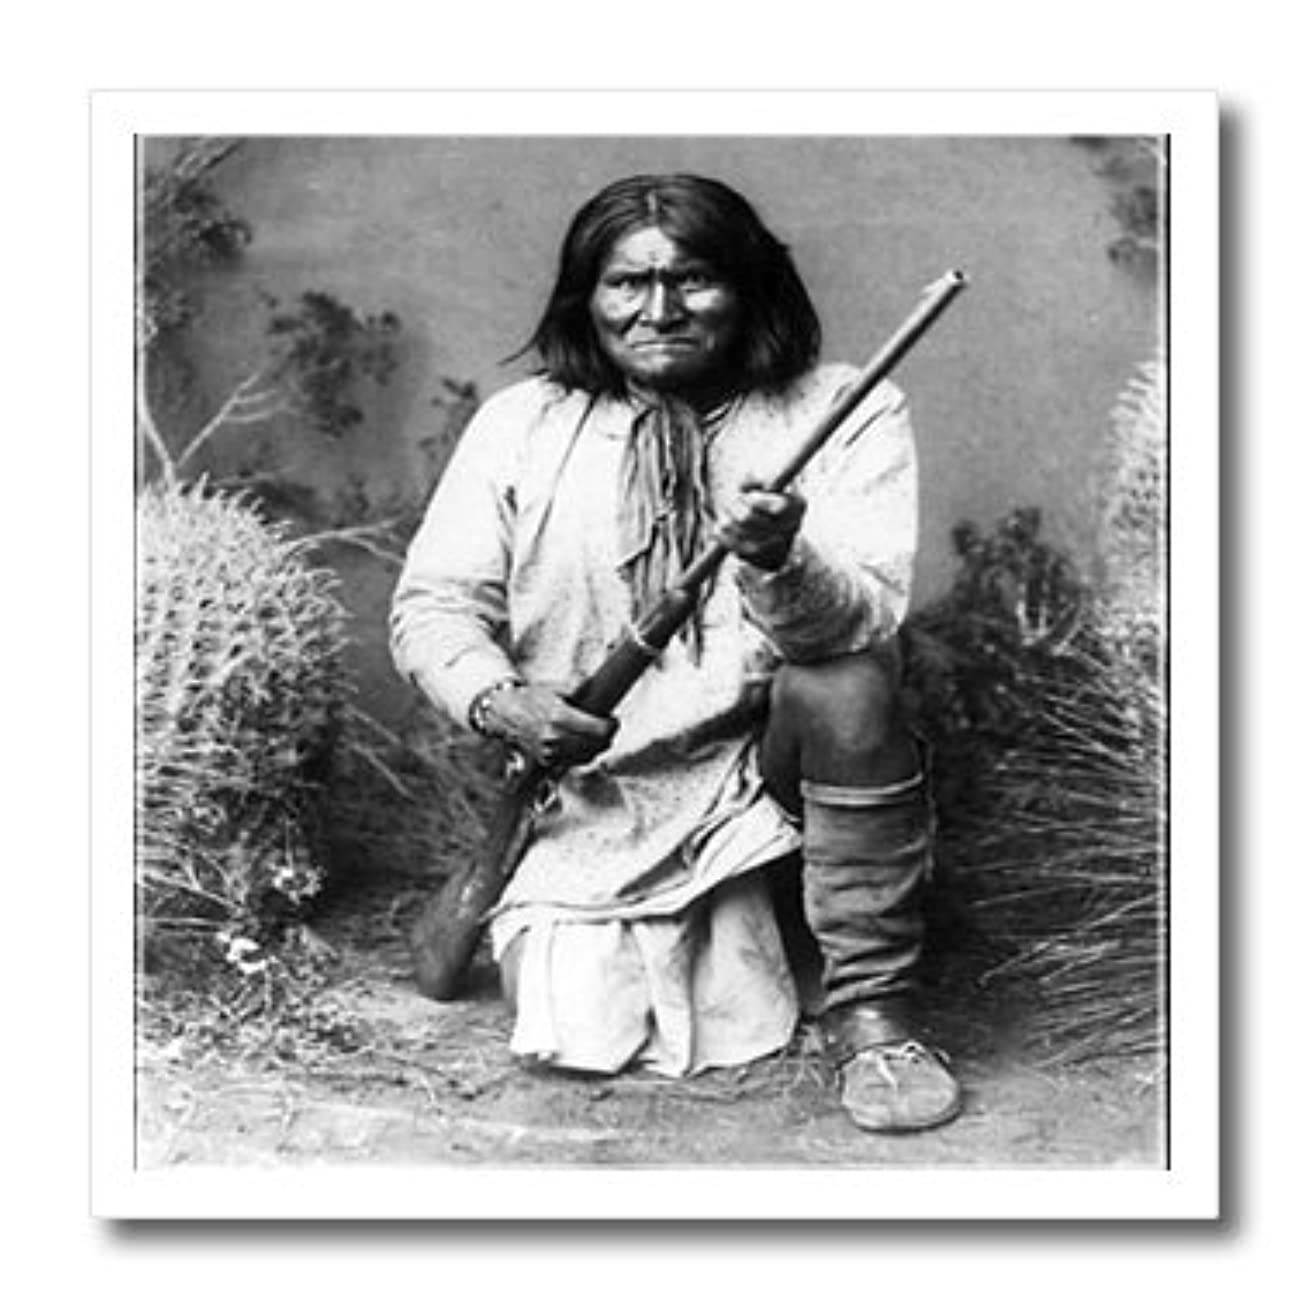 3dRose ht_98646_3 Vintage Photo of Geronimo in Black N White.Jpg-Iron on Heat Transfer for White Material, 10 by 10-Inch